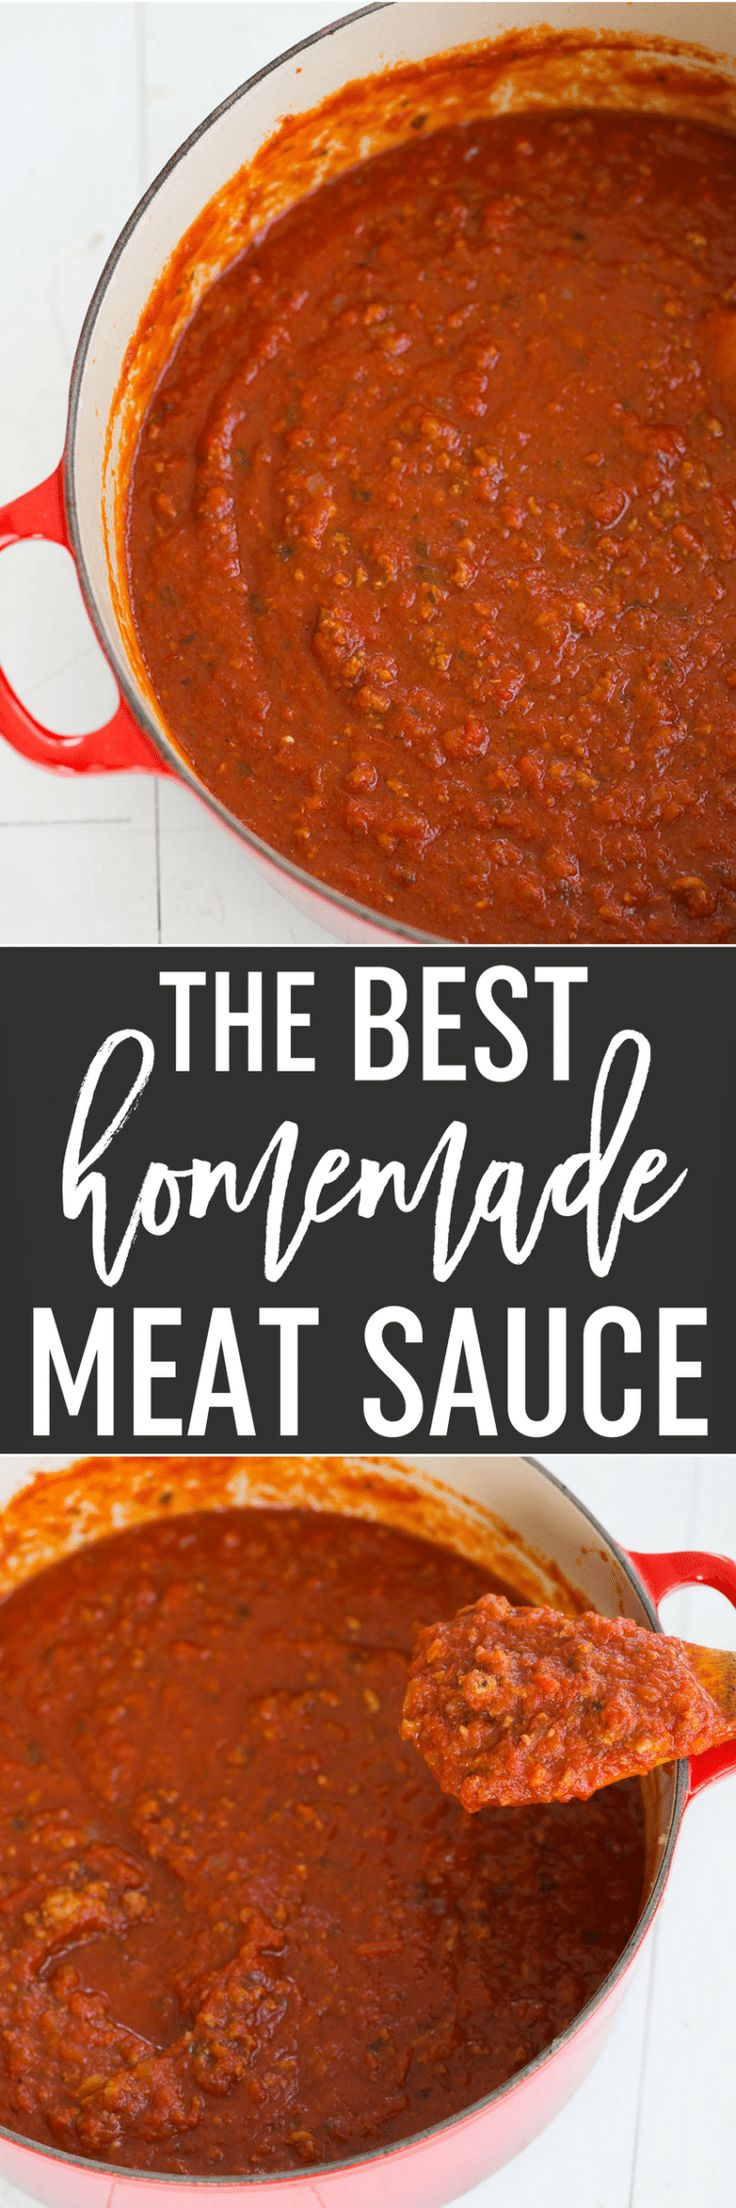 This homemade meat sauce is the BEST! It's thick, hearty, and uses a combination of beef, pork and veal for phenomenal flavor. via @browneyedbaker